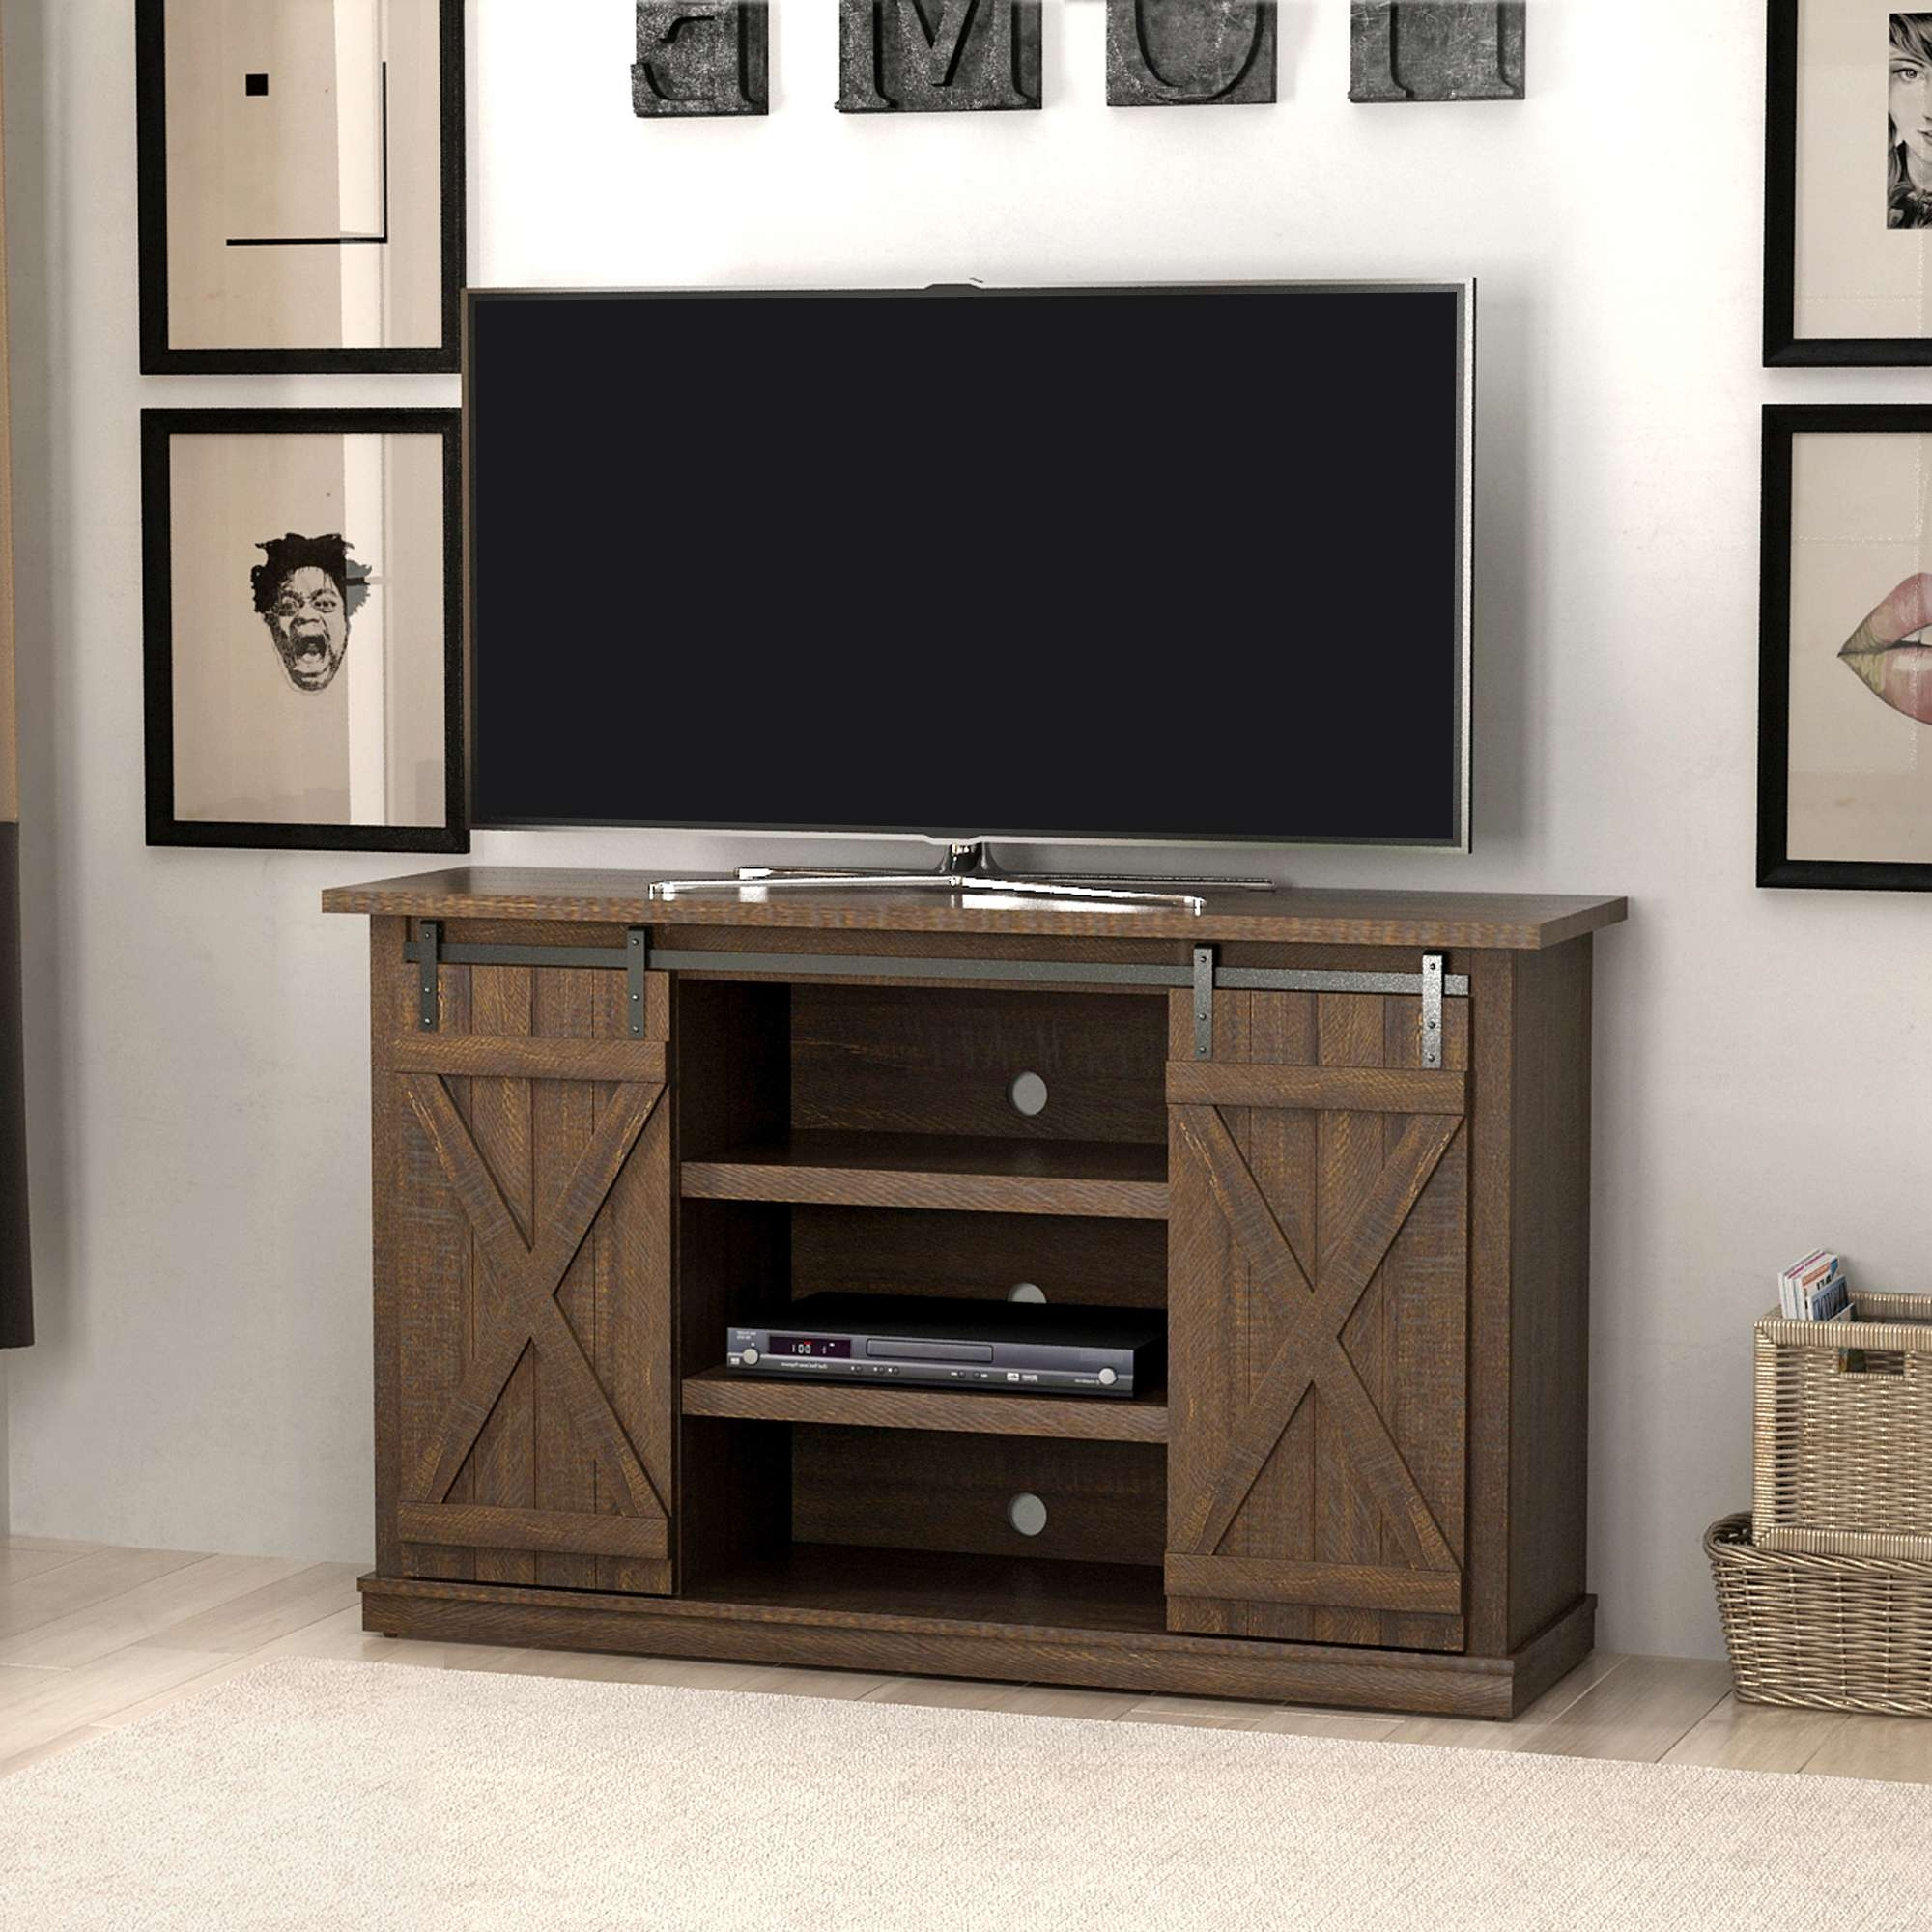 Tv Stands – Walmart In 24 Inch Led Tv Stands (View 14 of 15)